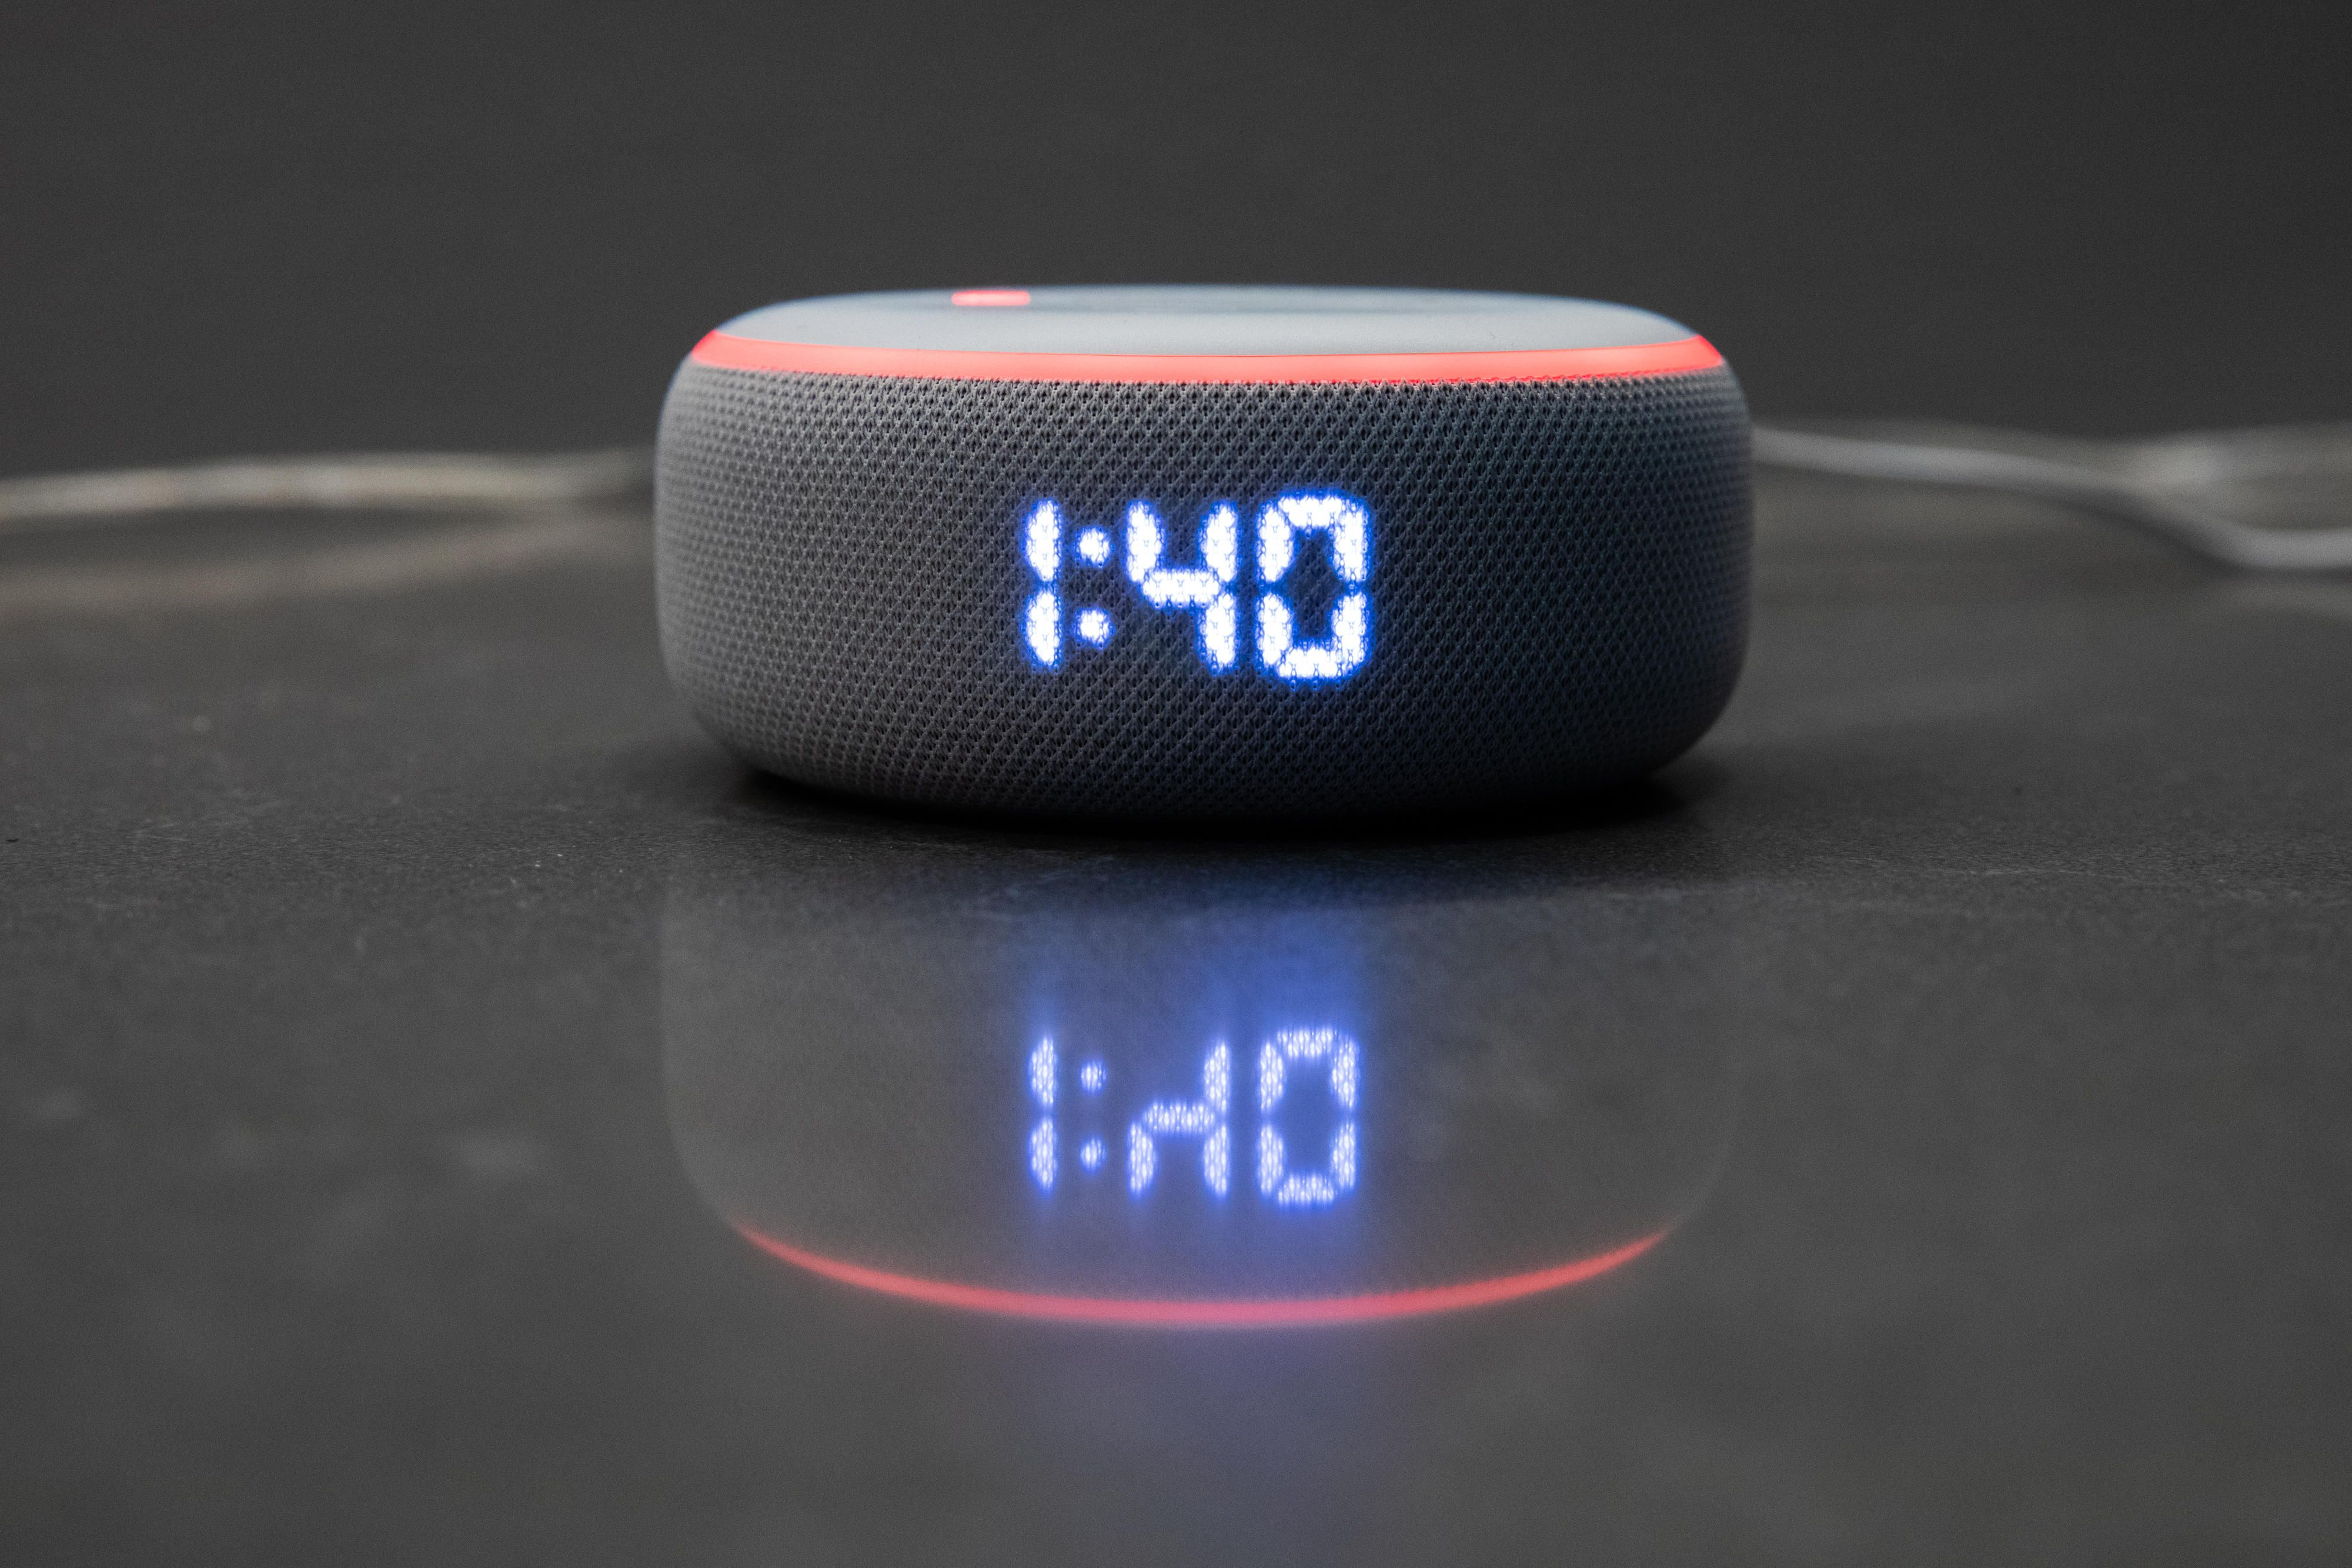 amazon-event-092519-echo-dot-with-clock-0964